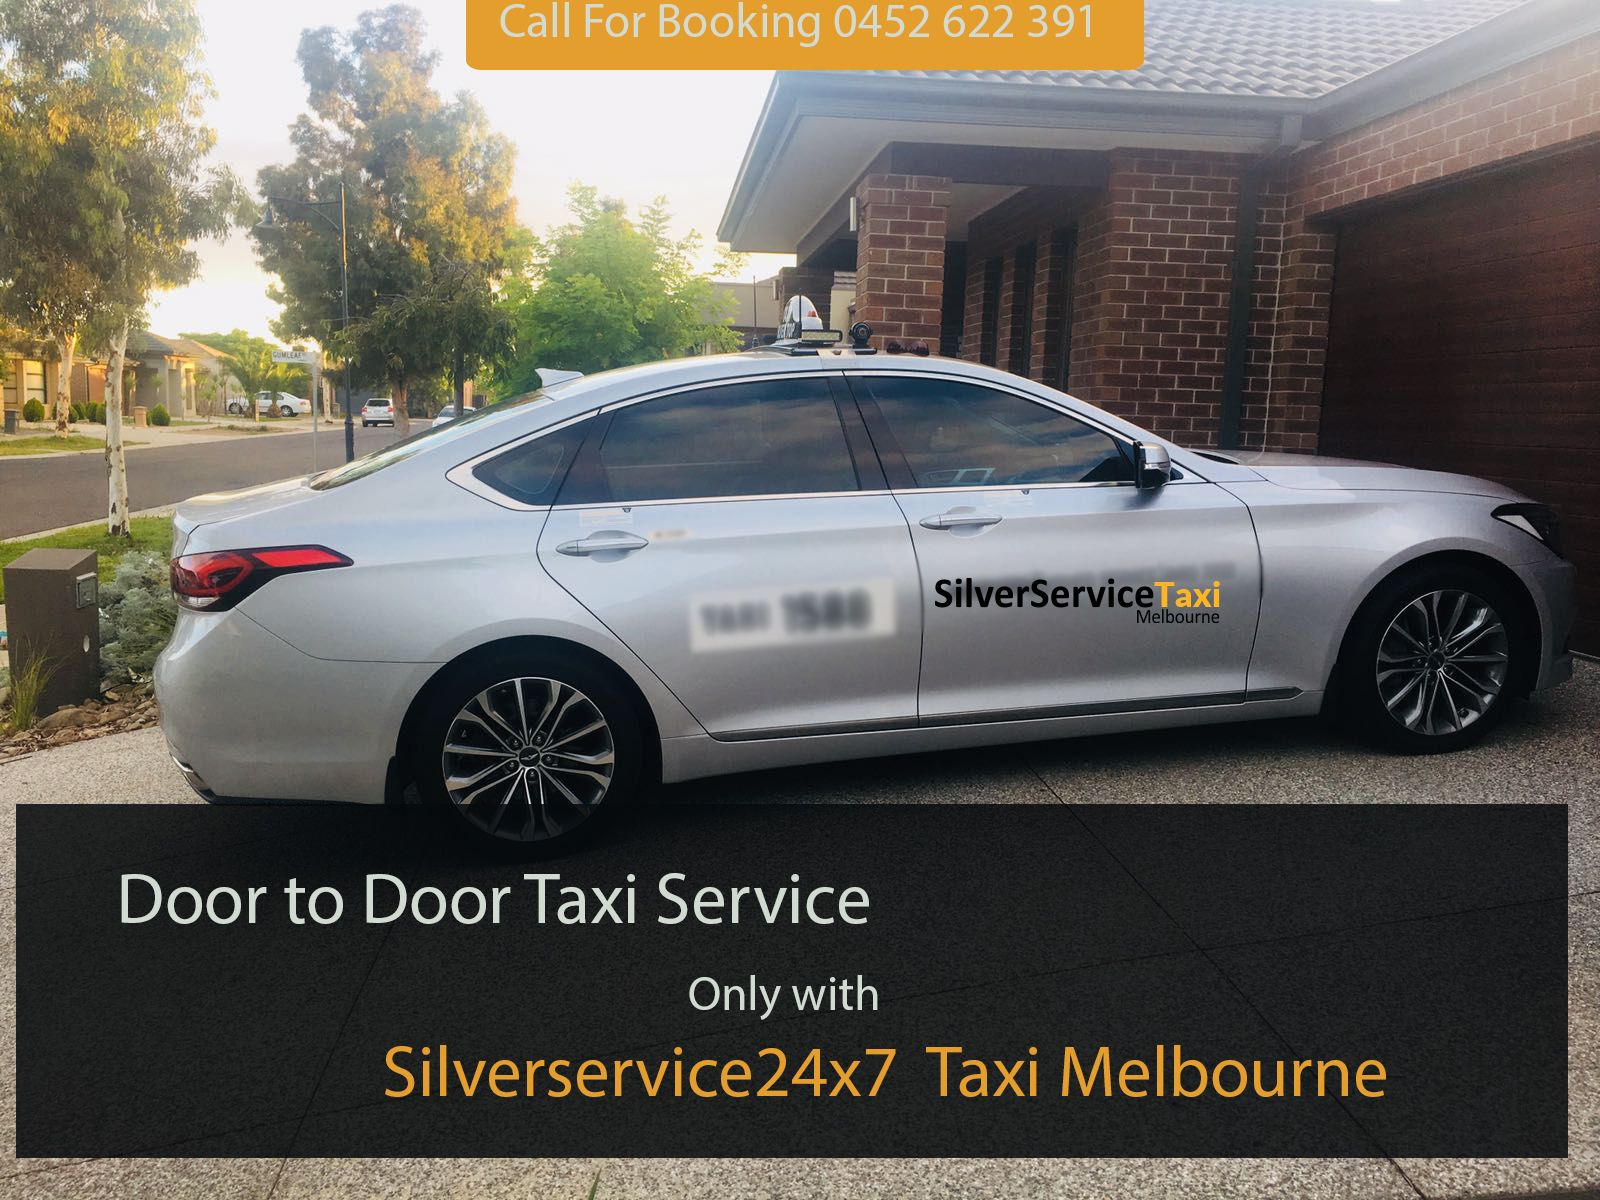 Book #Door to #door #taxi #Service in #Melbourne only with Silverservice24x7 #Taxi #Melbourne by direct call at 0452 622 391 or Book@silverservice24x7.com for any detail visit at www.silverservice24x7.com